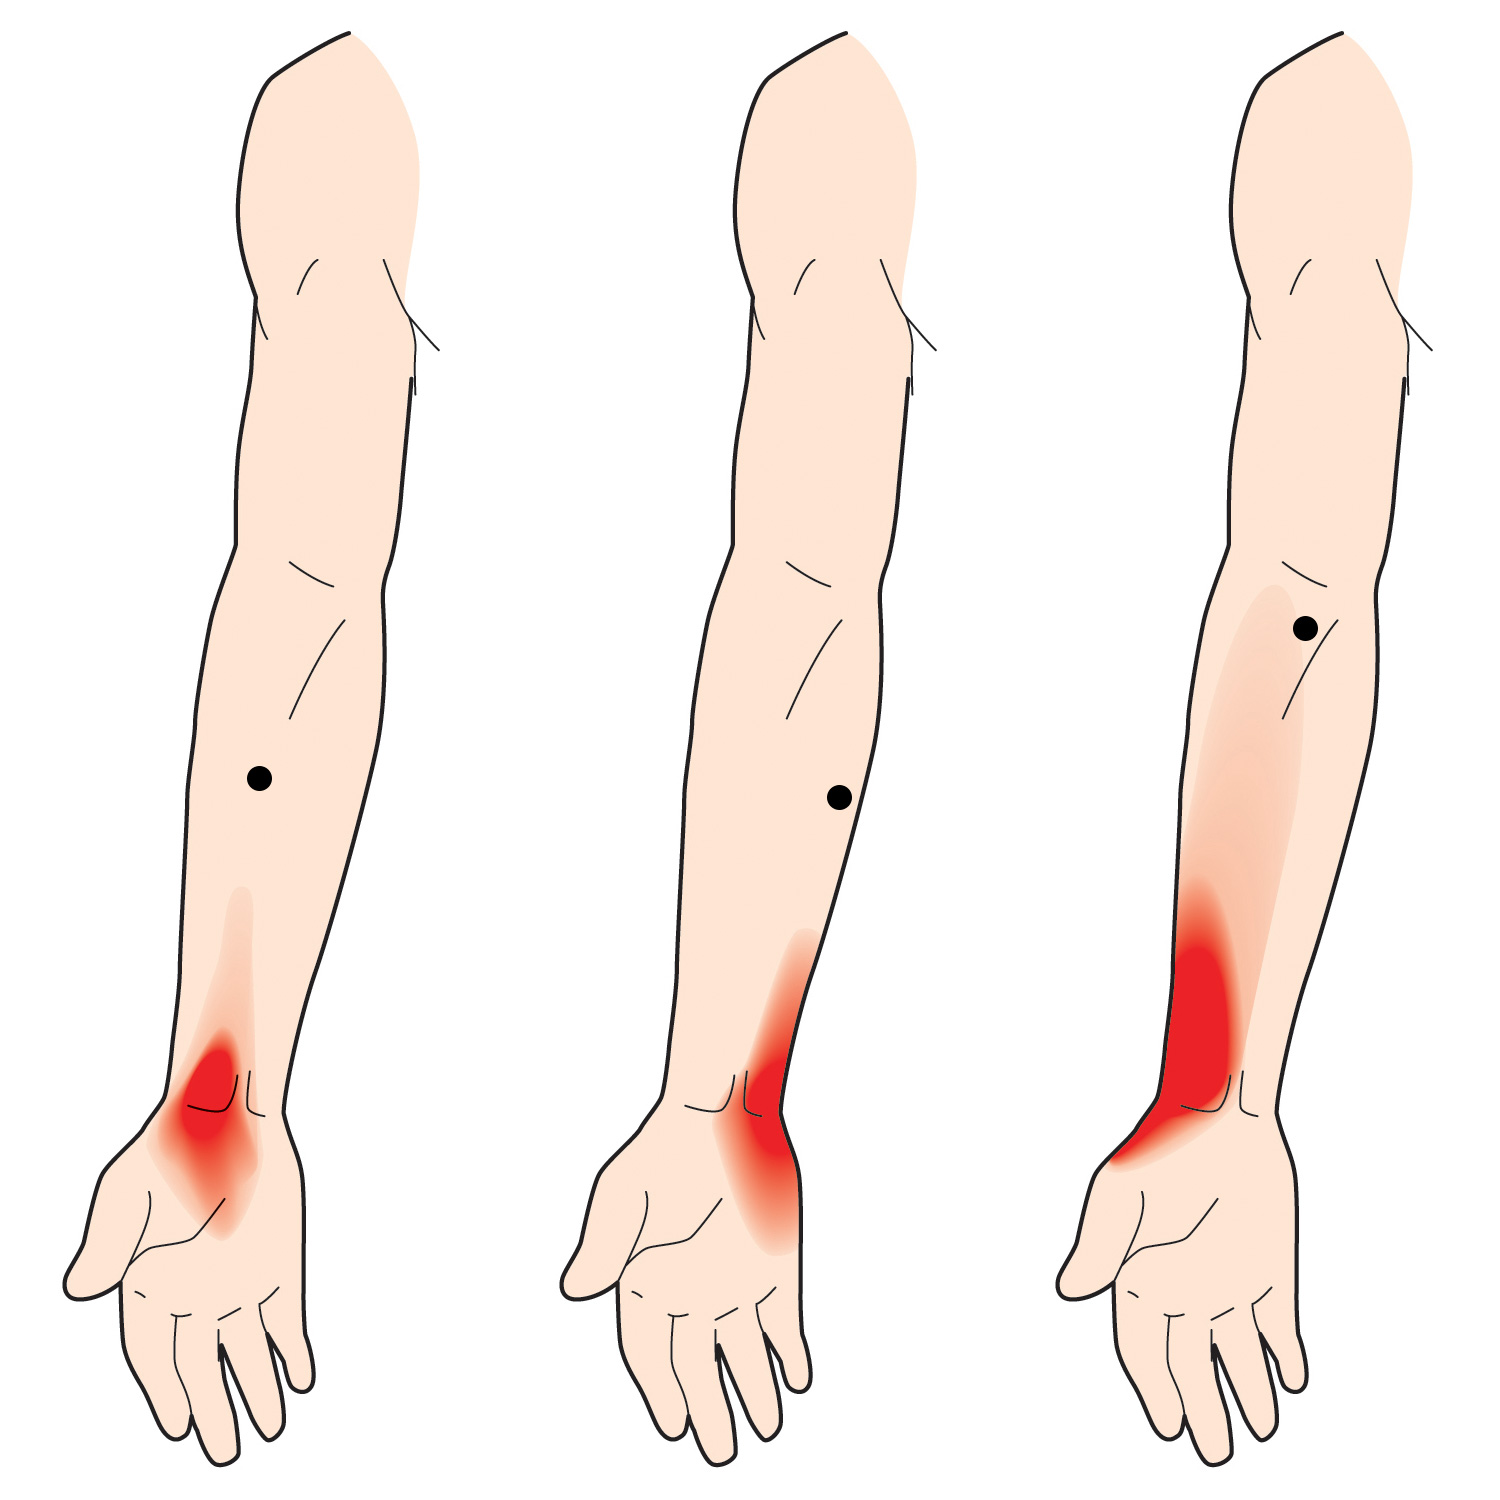 Pain from thumb to elbow